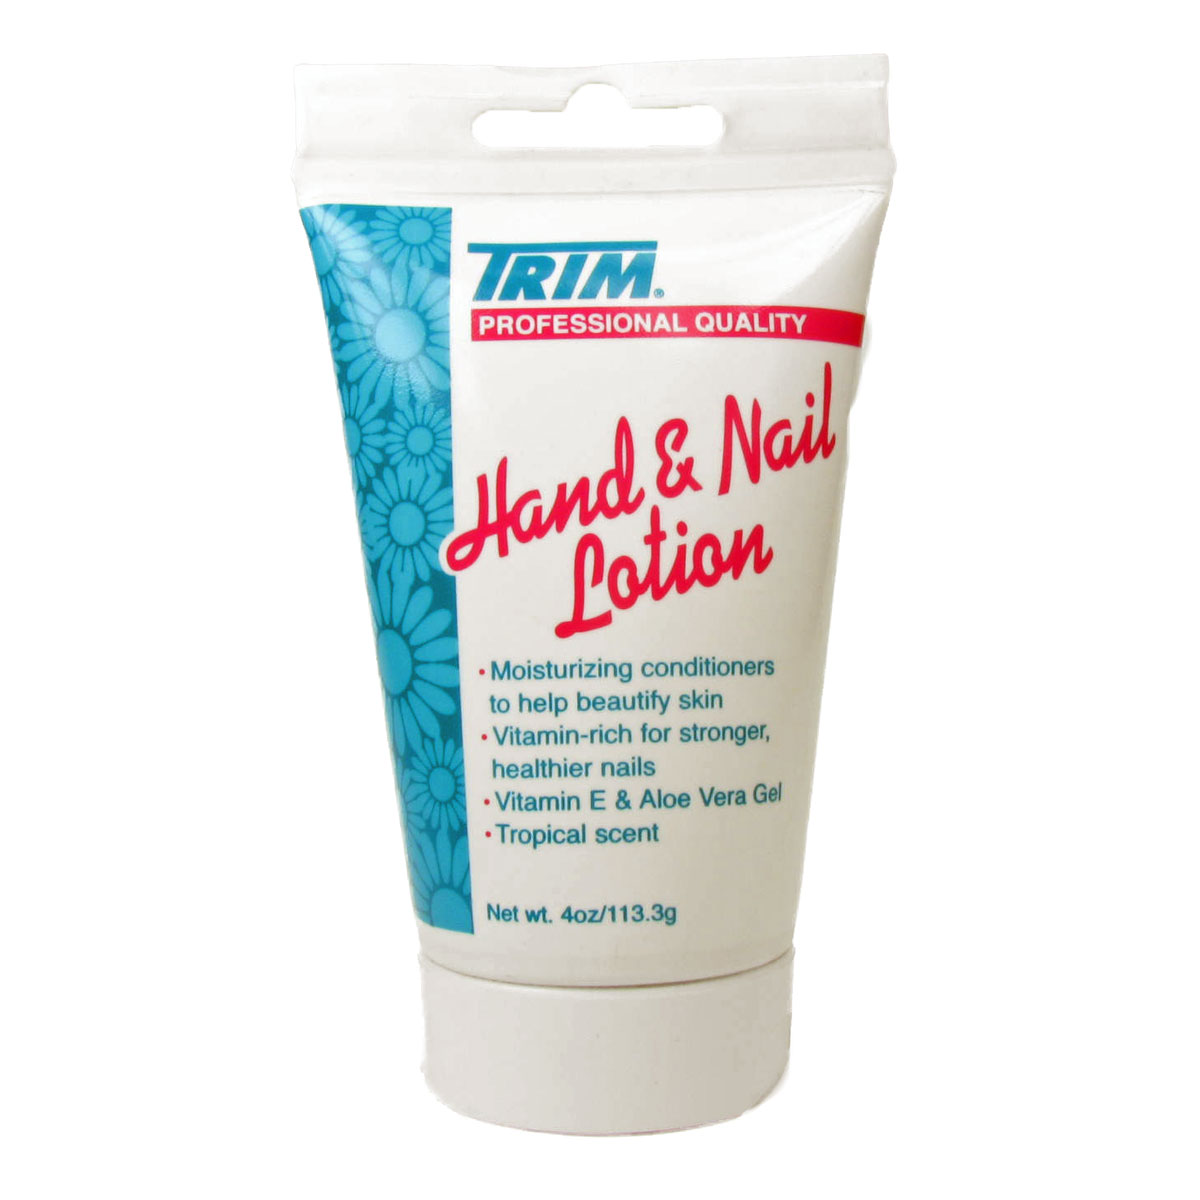 TRIM Professional Quality Hand & Nail Lotion - 113.3 g Enlarged Preview